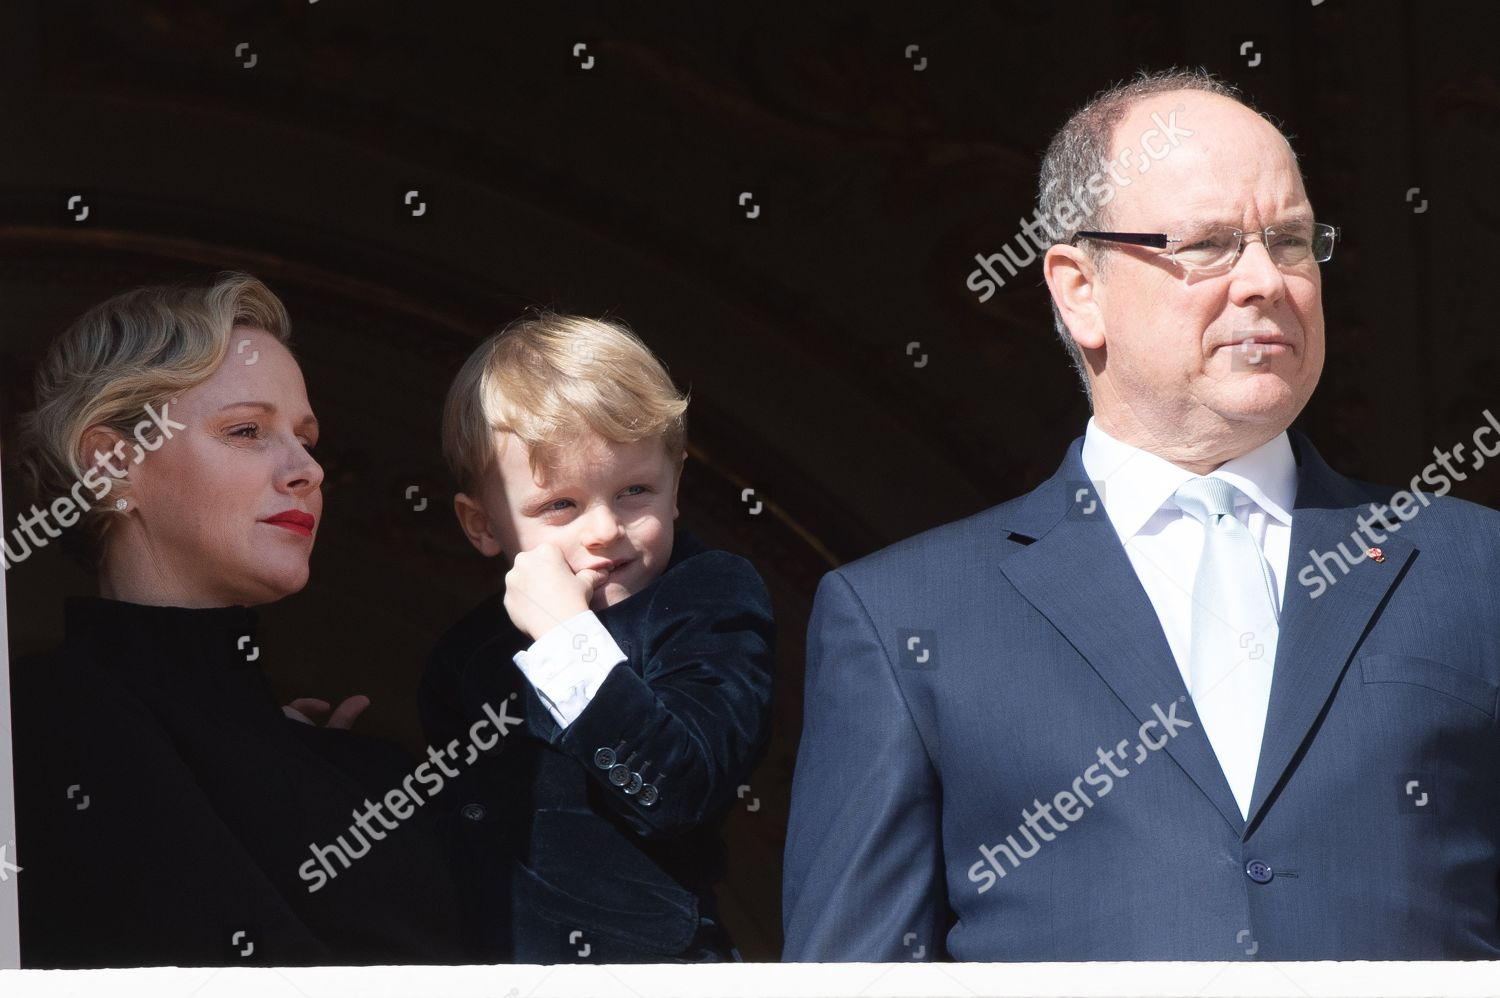 ceremony-of-the-sainte-devote-monaco-stock-image-by-pierre-villard-for-editorial-use-27-jan-2019